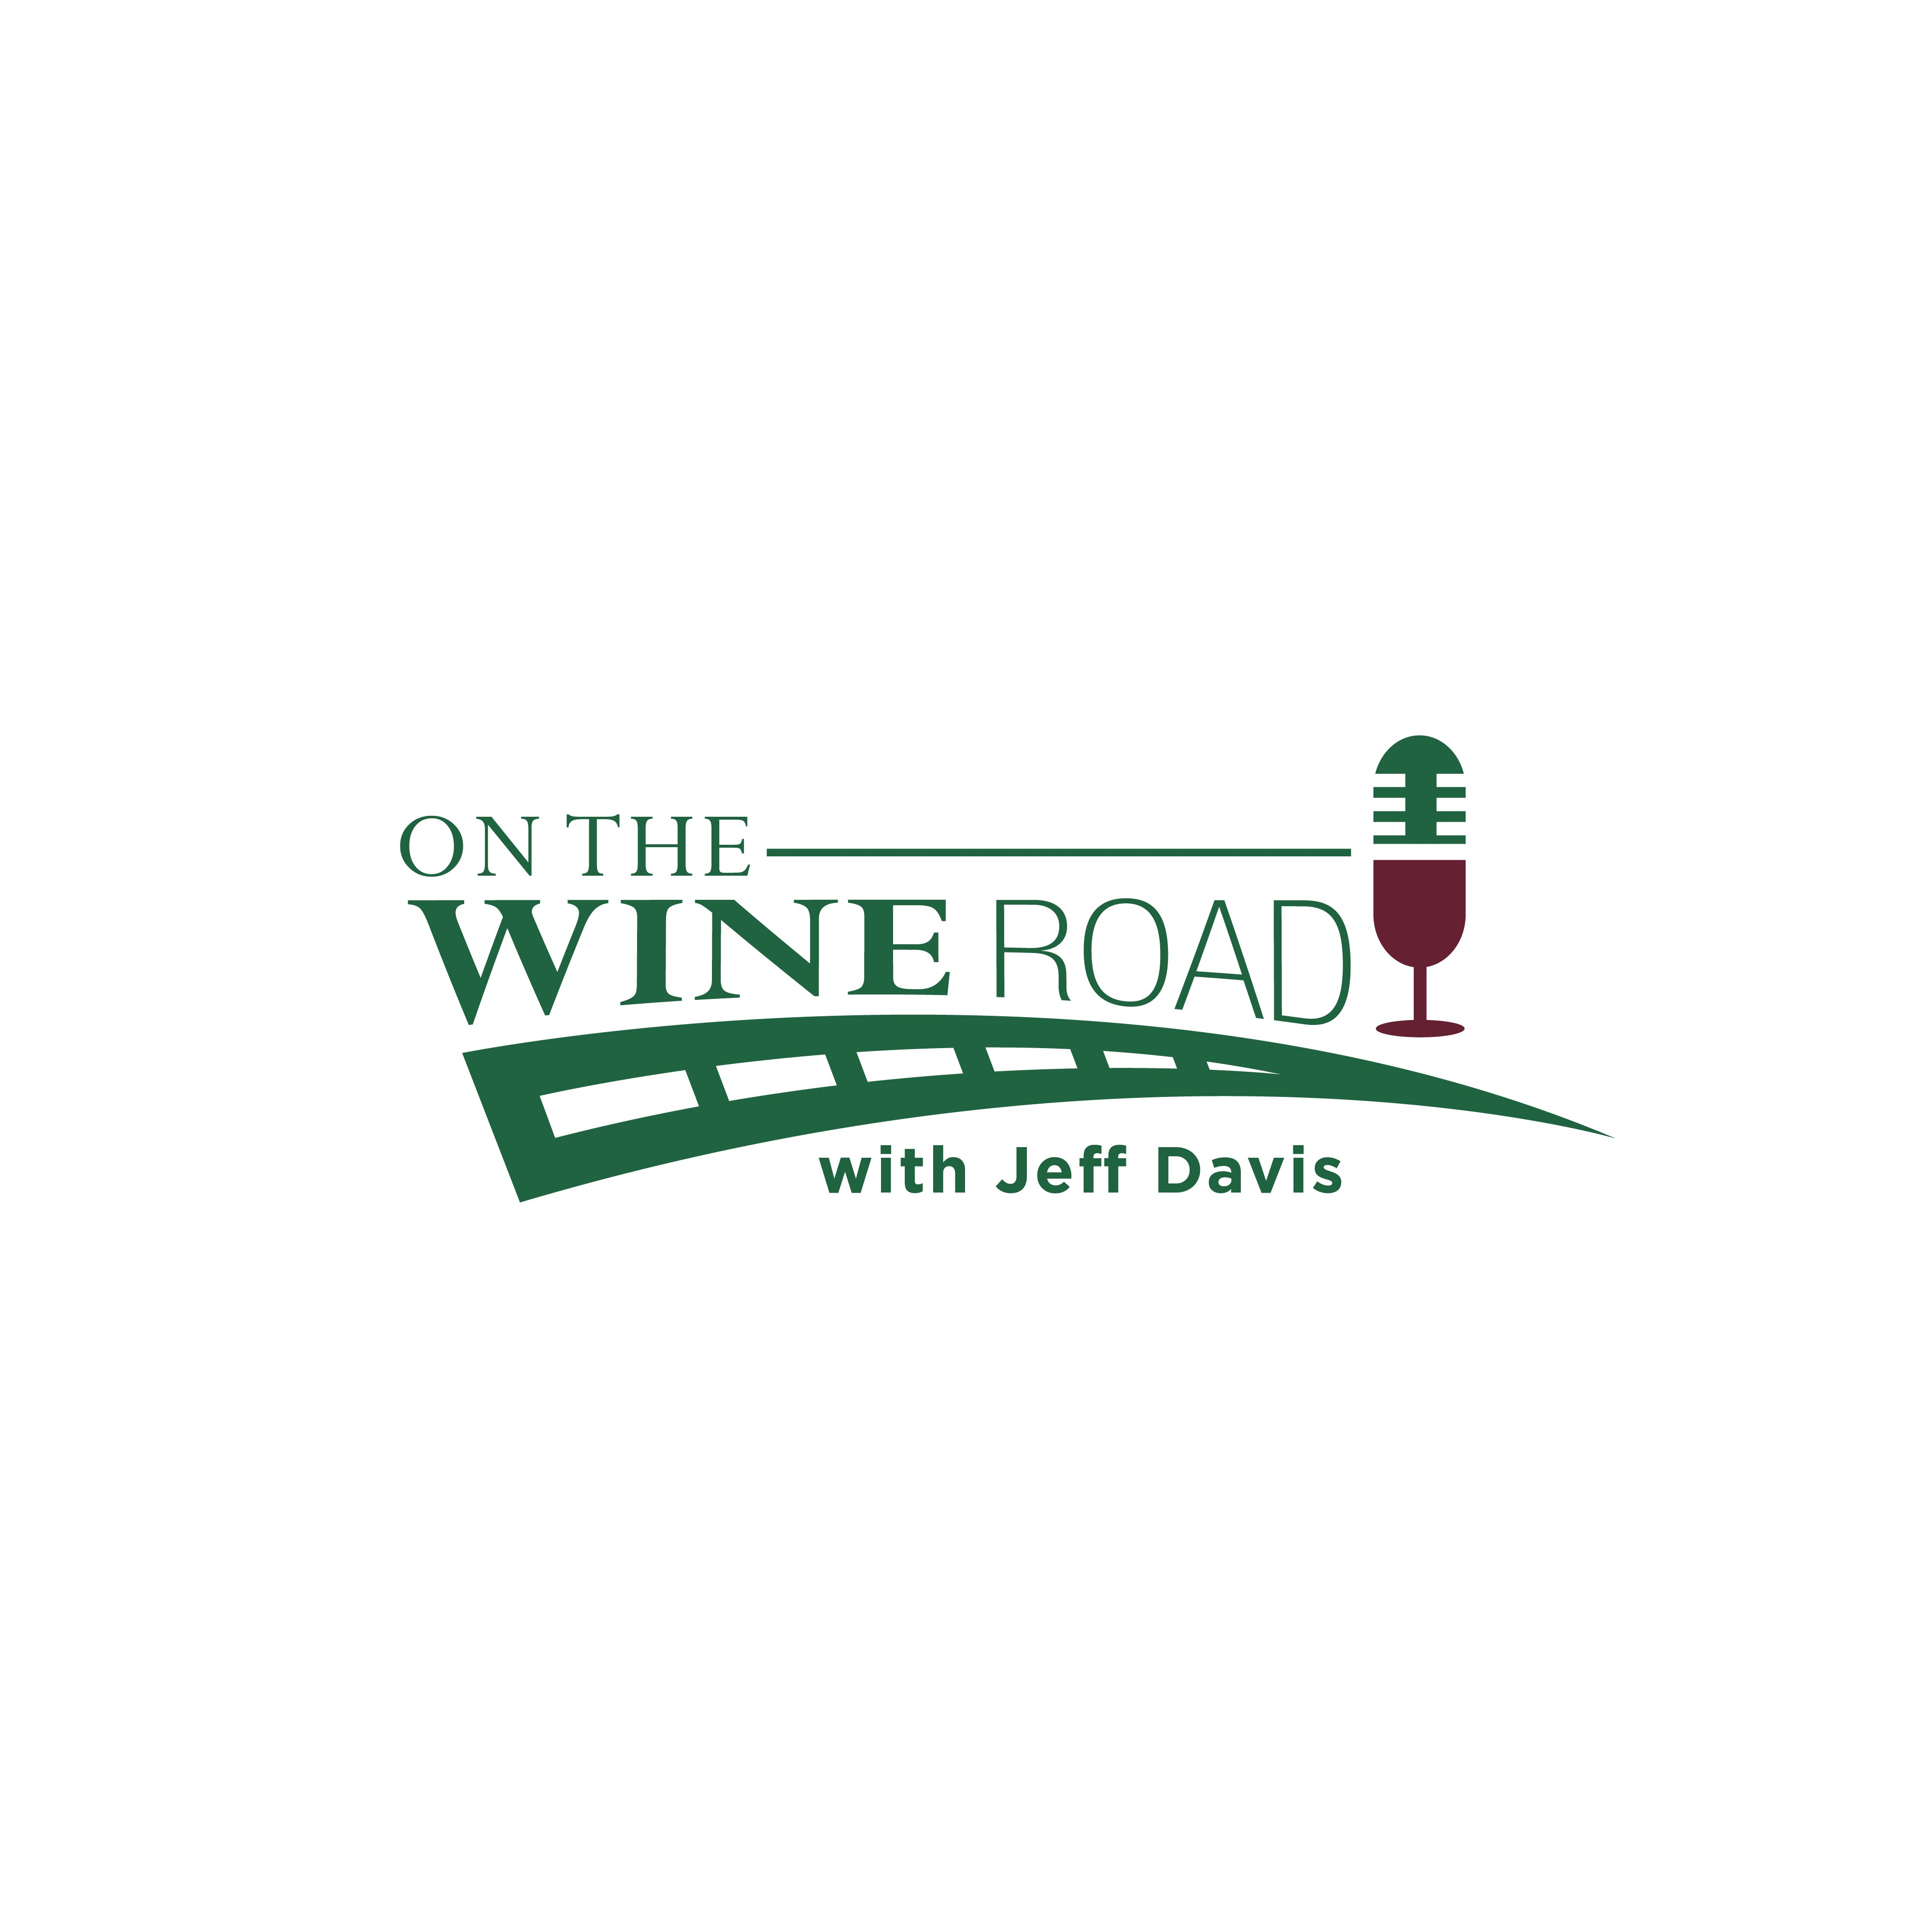 Design a logo to take my wine show brand to a higher level